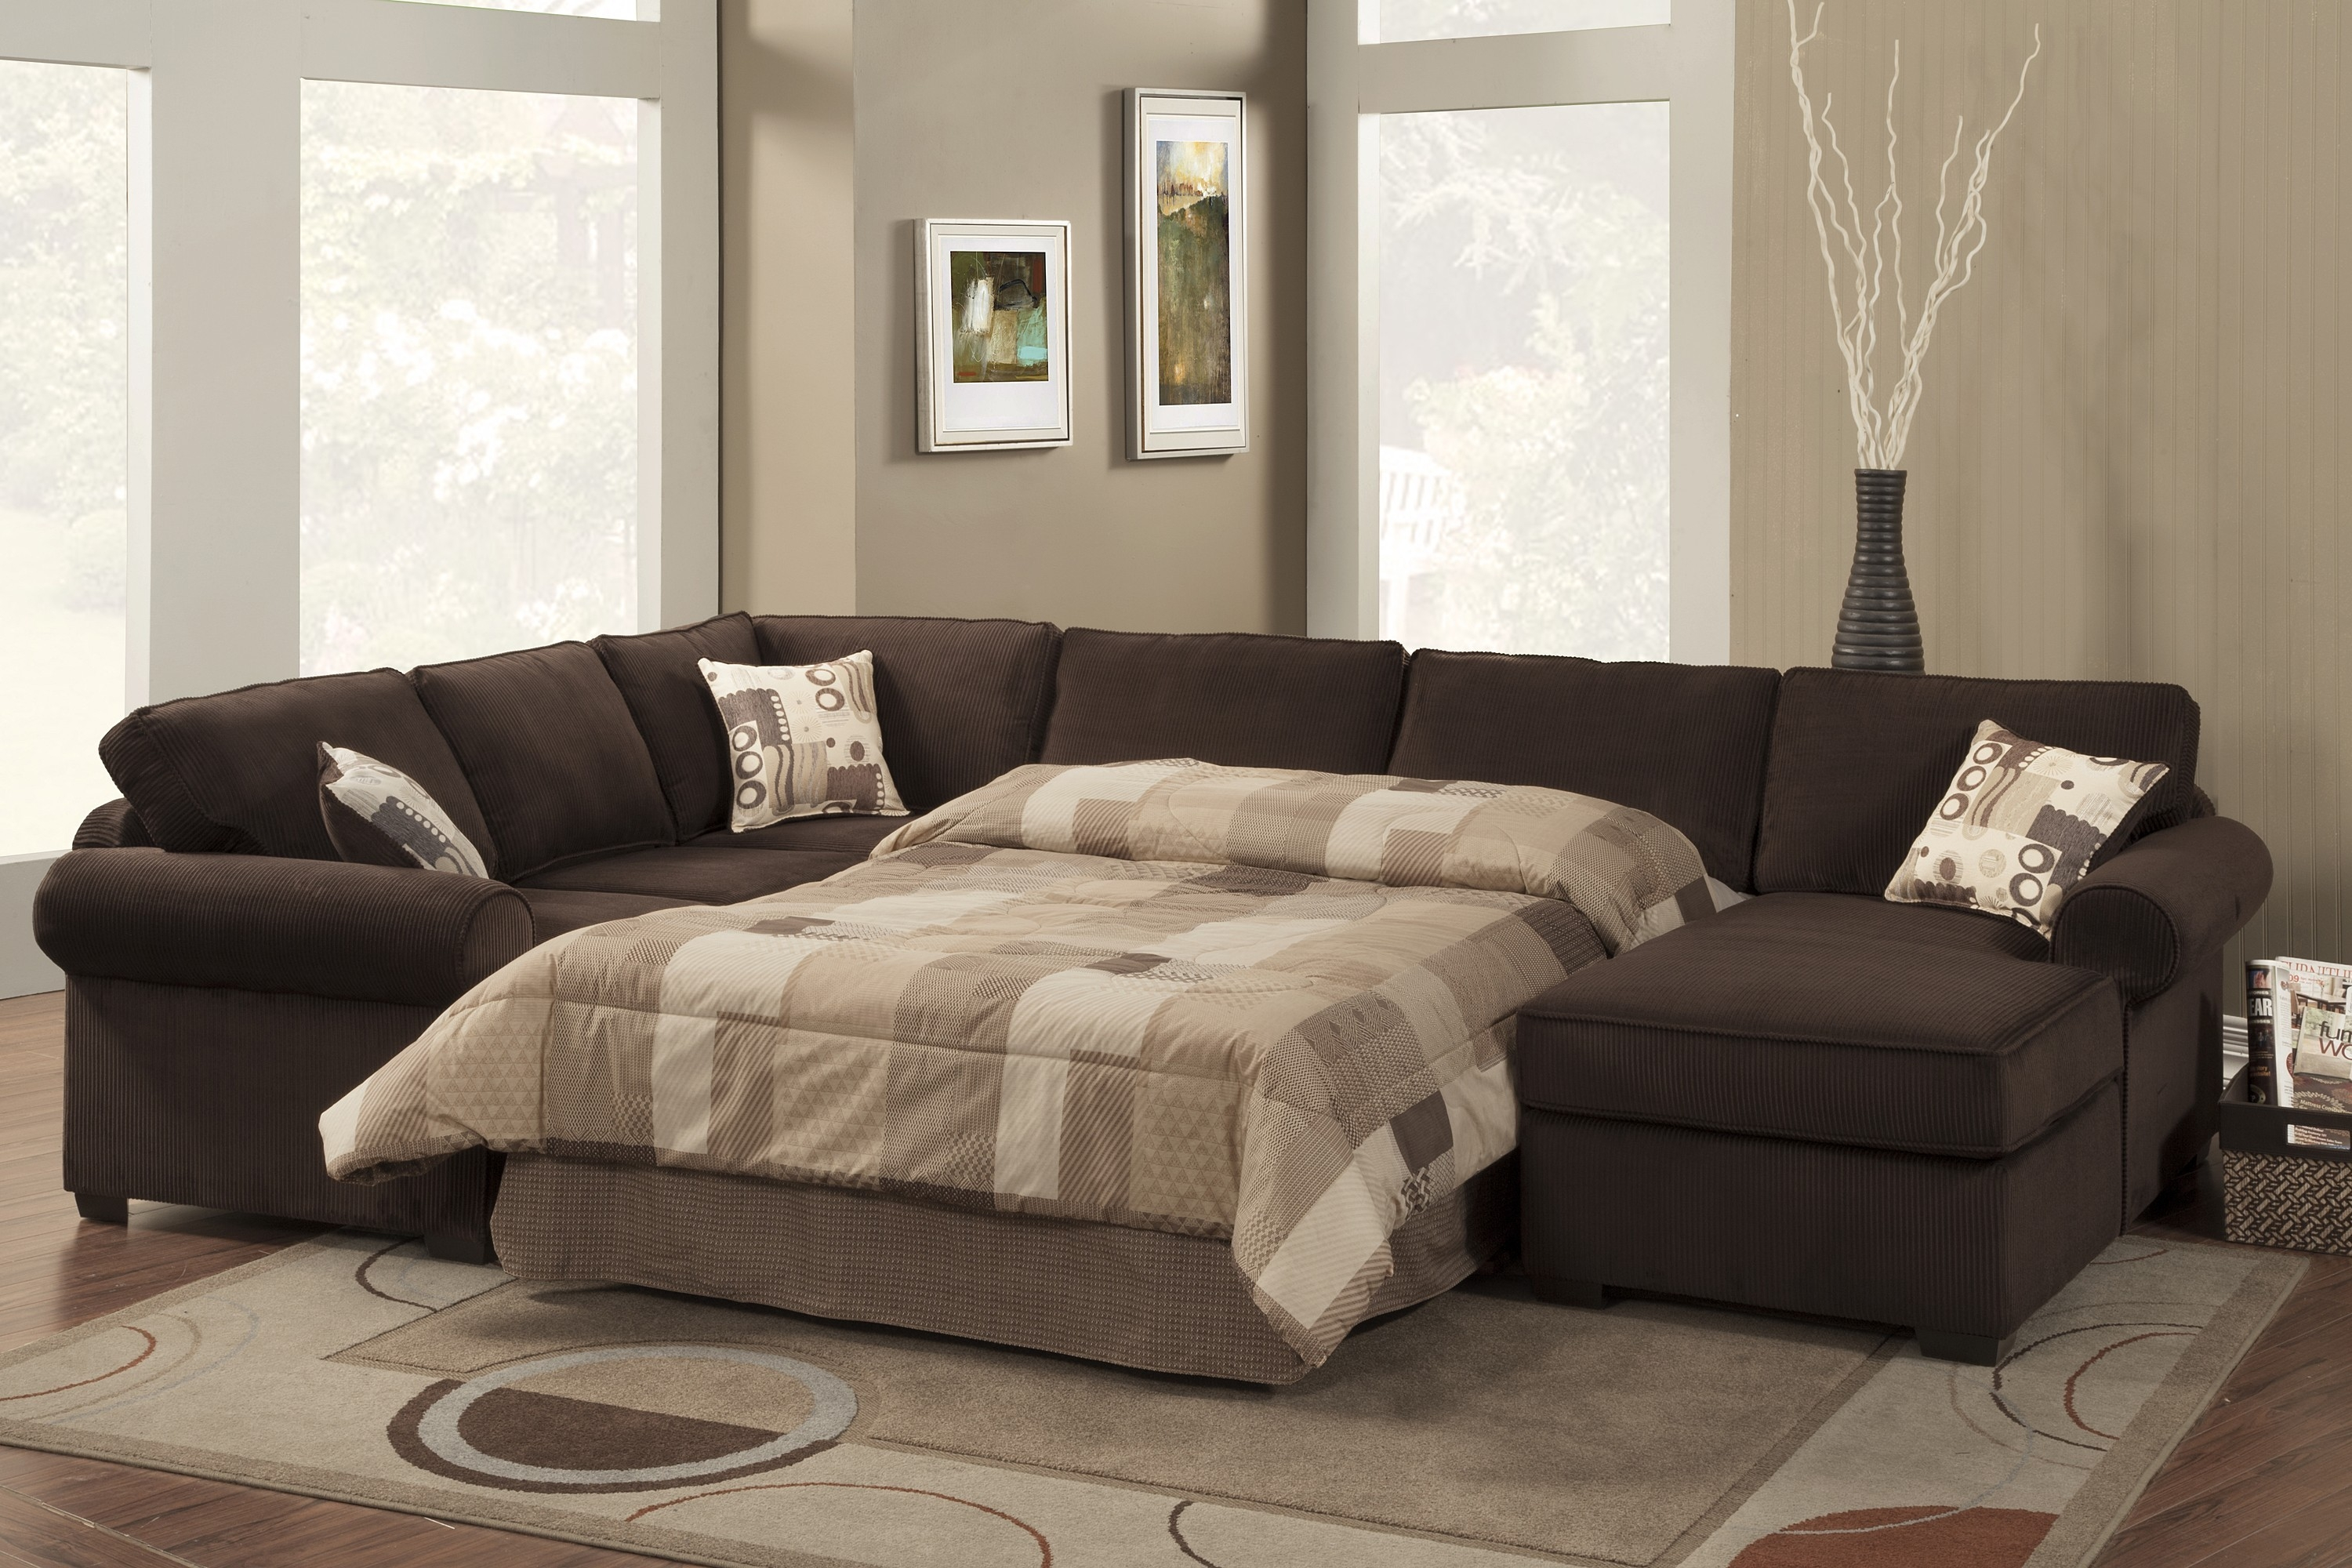 Best Elegant Sectional Sofa With Sleeper And Chaise 41 On Sectional Sleeper Sofa sectional sleeper sofa